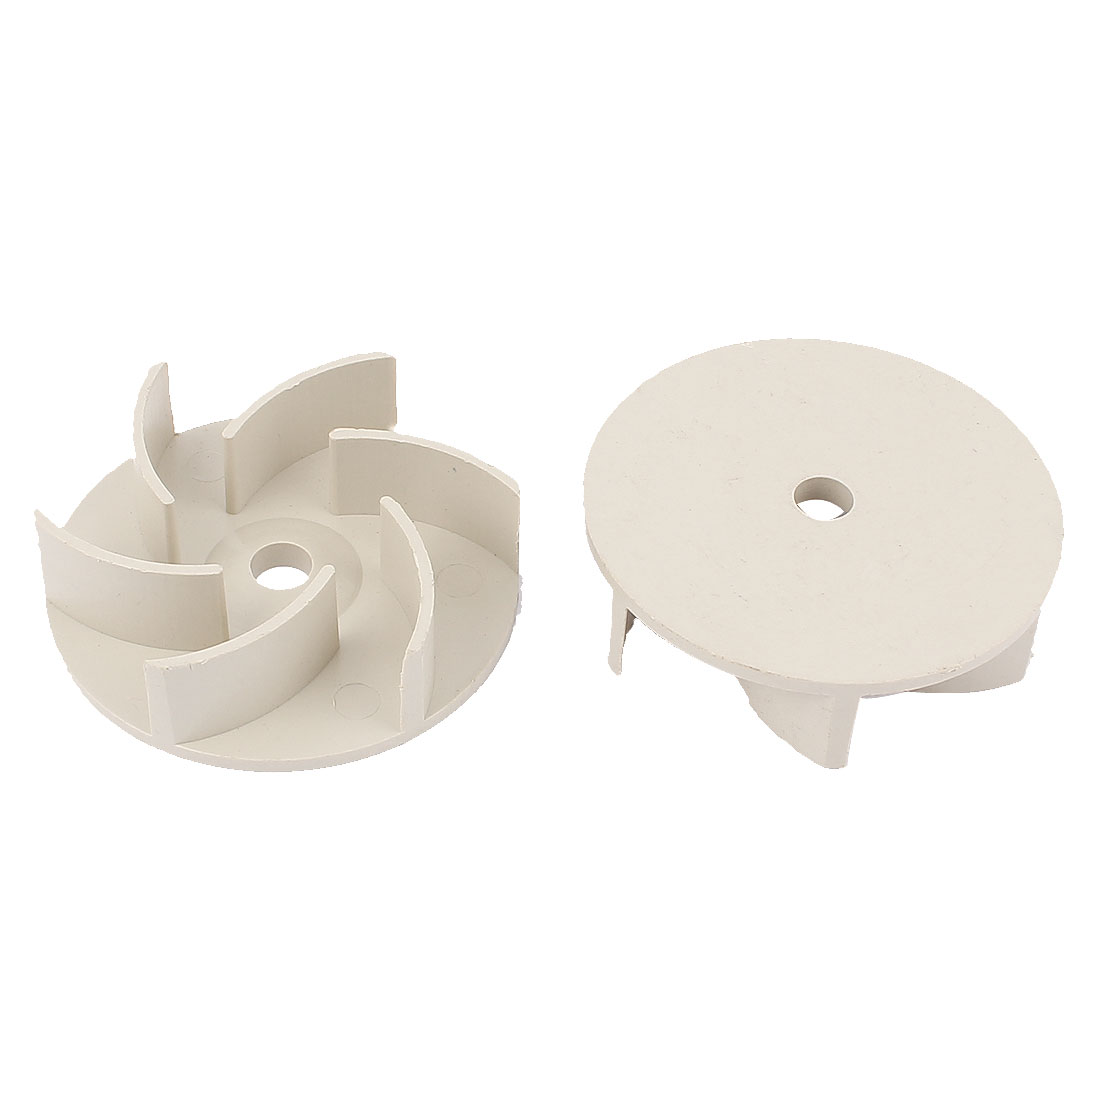 Plastic Impeller Motor Fan 10mm x 84mm x 23mm Gray 2Pcs